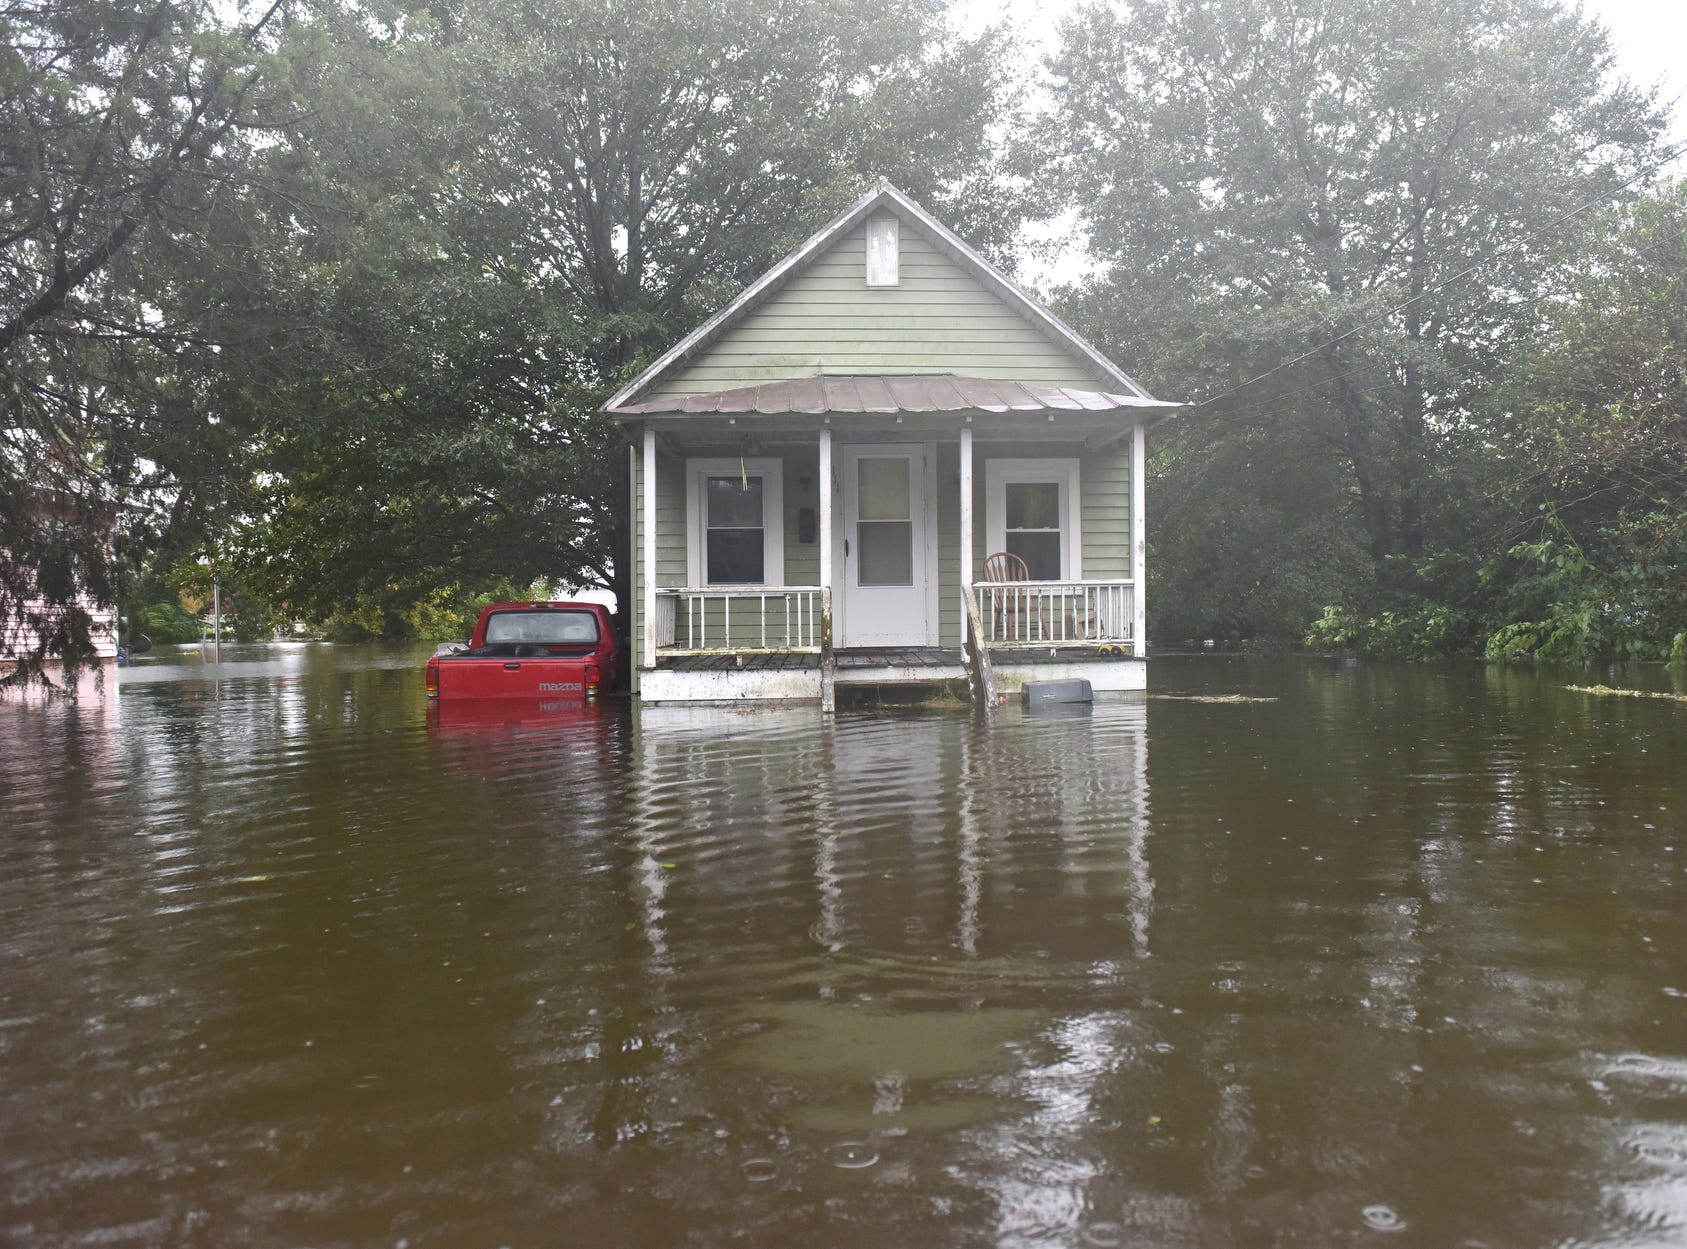 A home sits in high water on W 6th St after Hurricane Florence brought heavy rains to Washington, N.C. on Friday afternoon on Sept. 14, 2018.